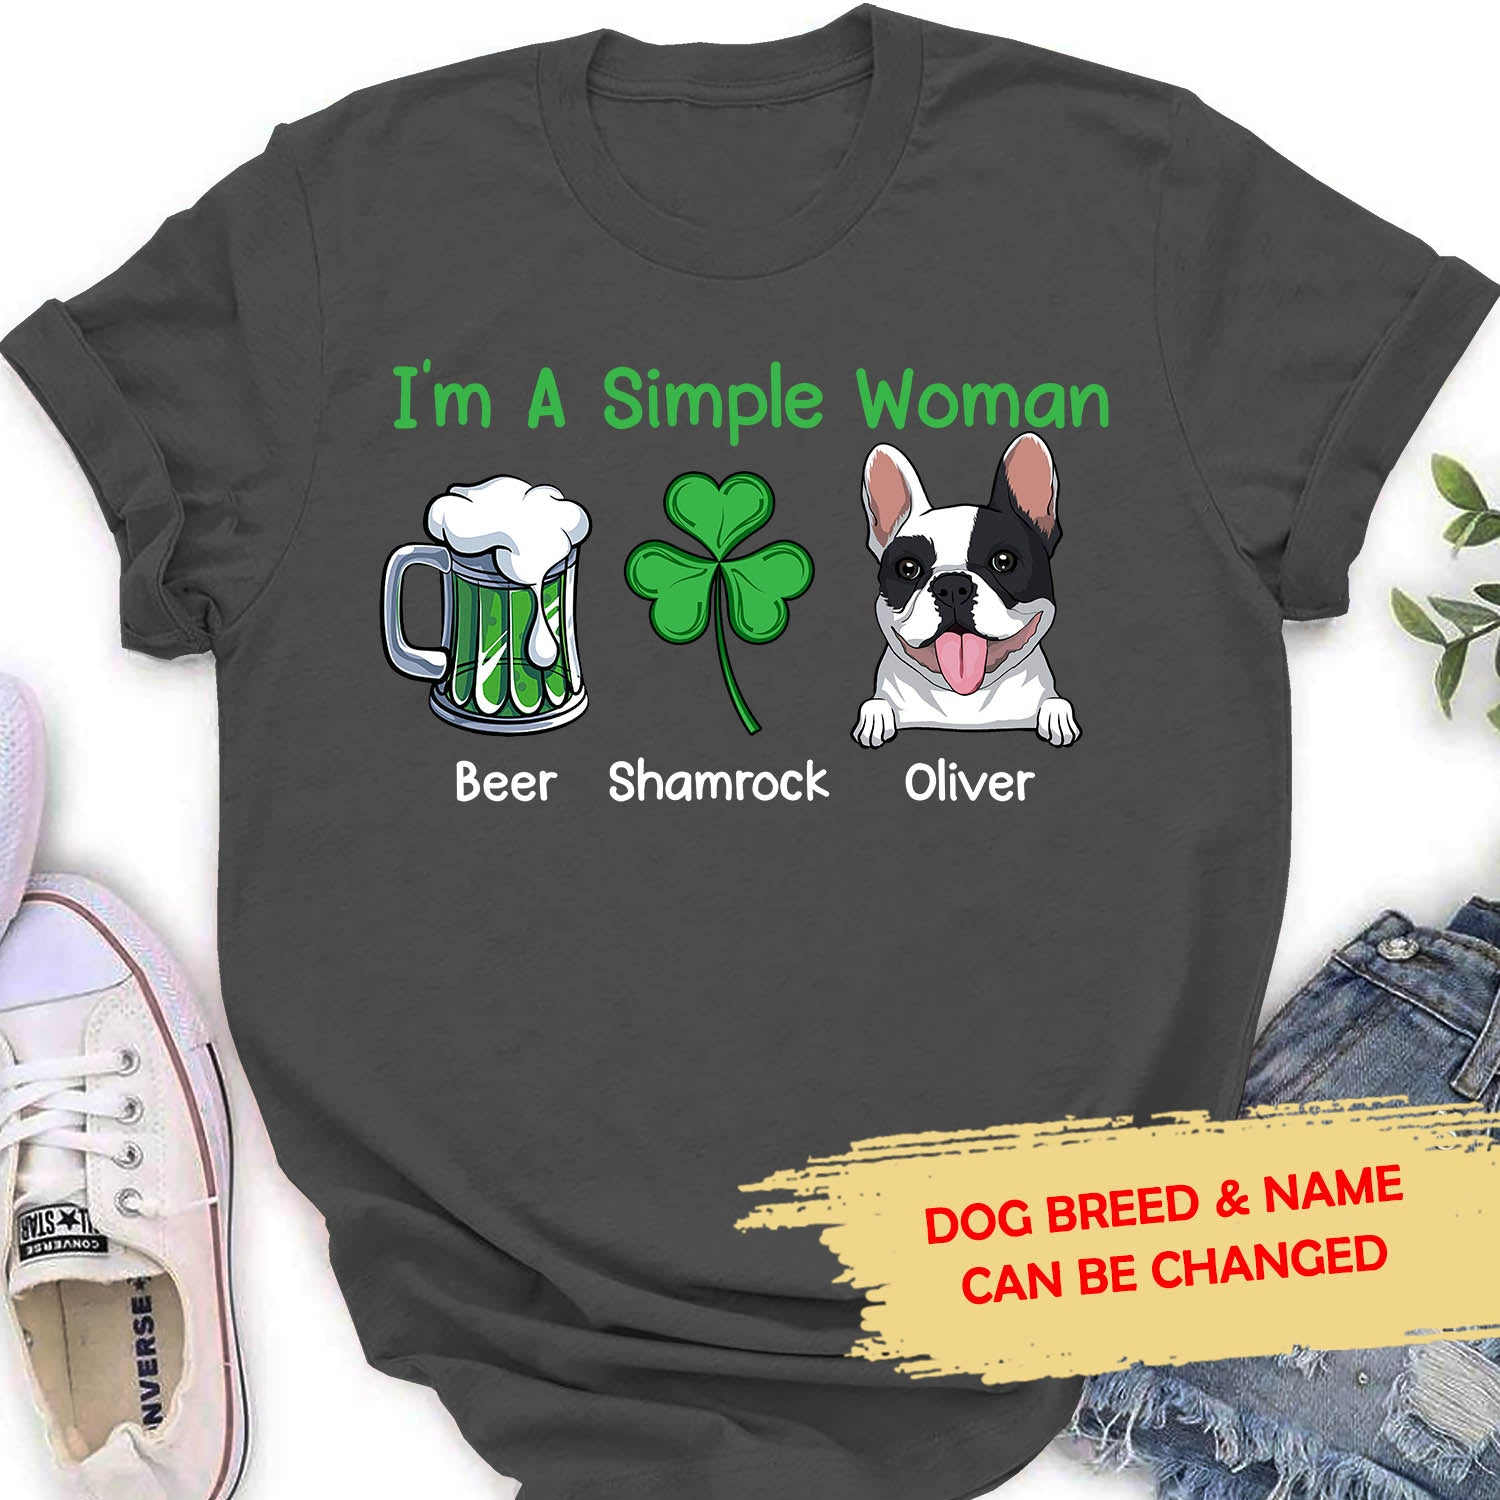 Simple Women - Personalized Custom Women T-shirt